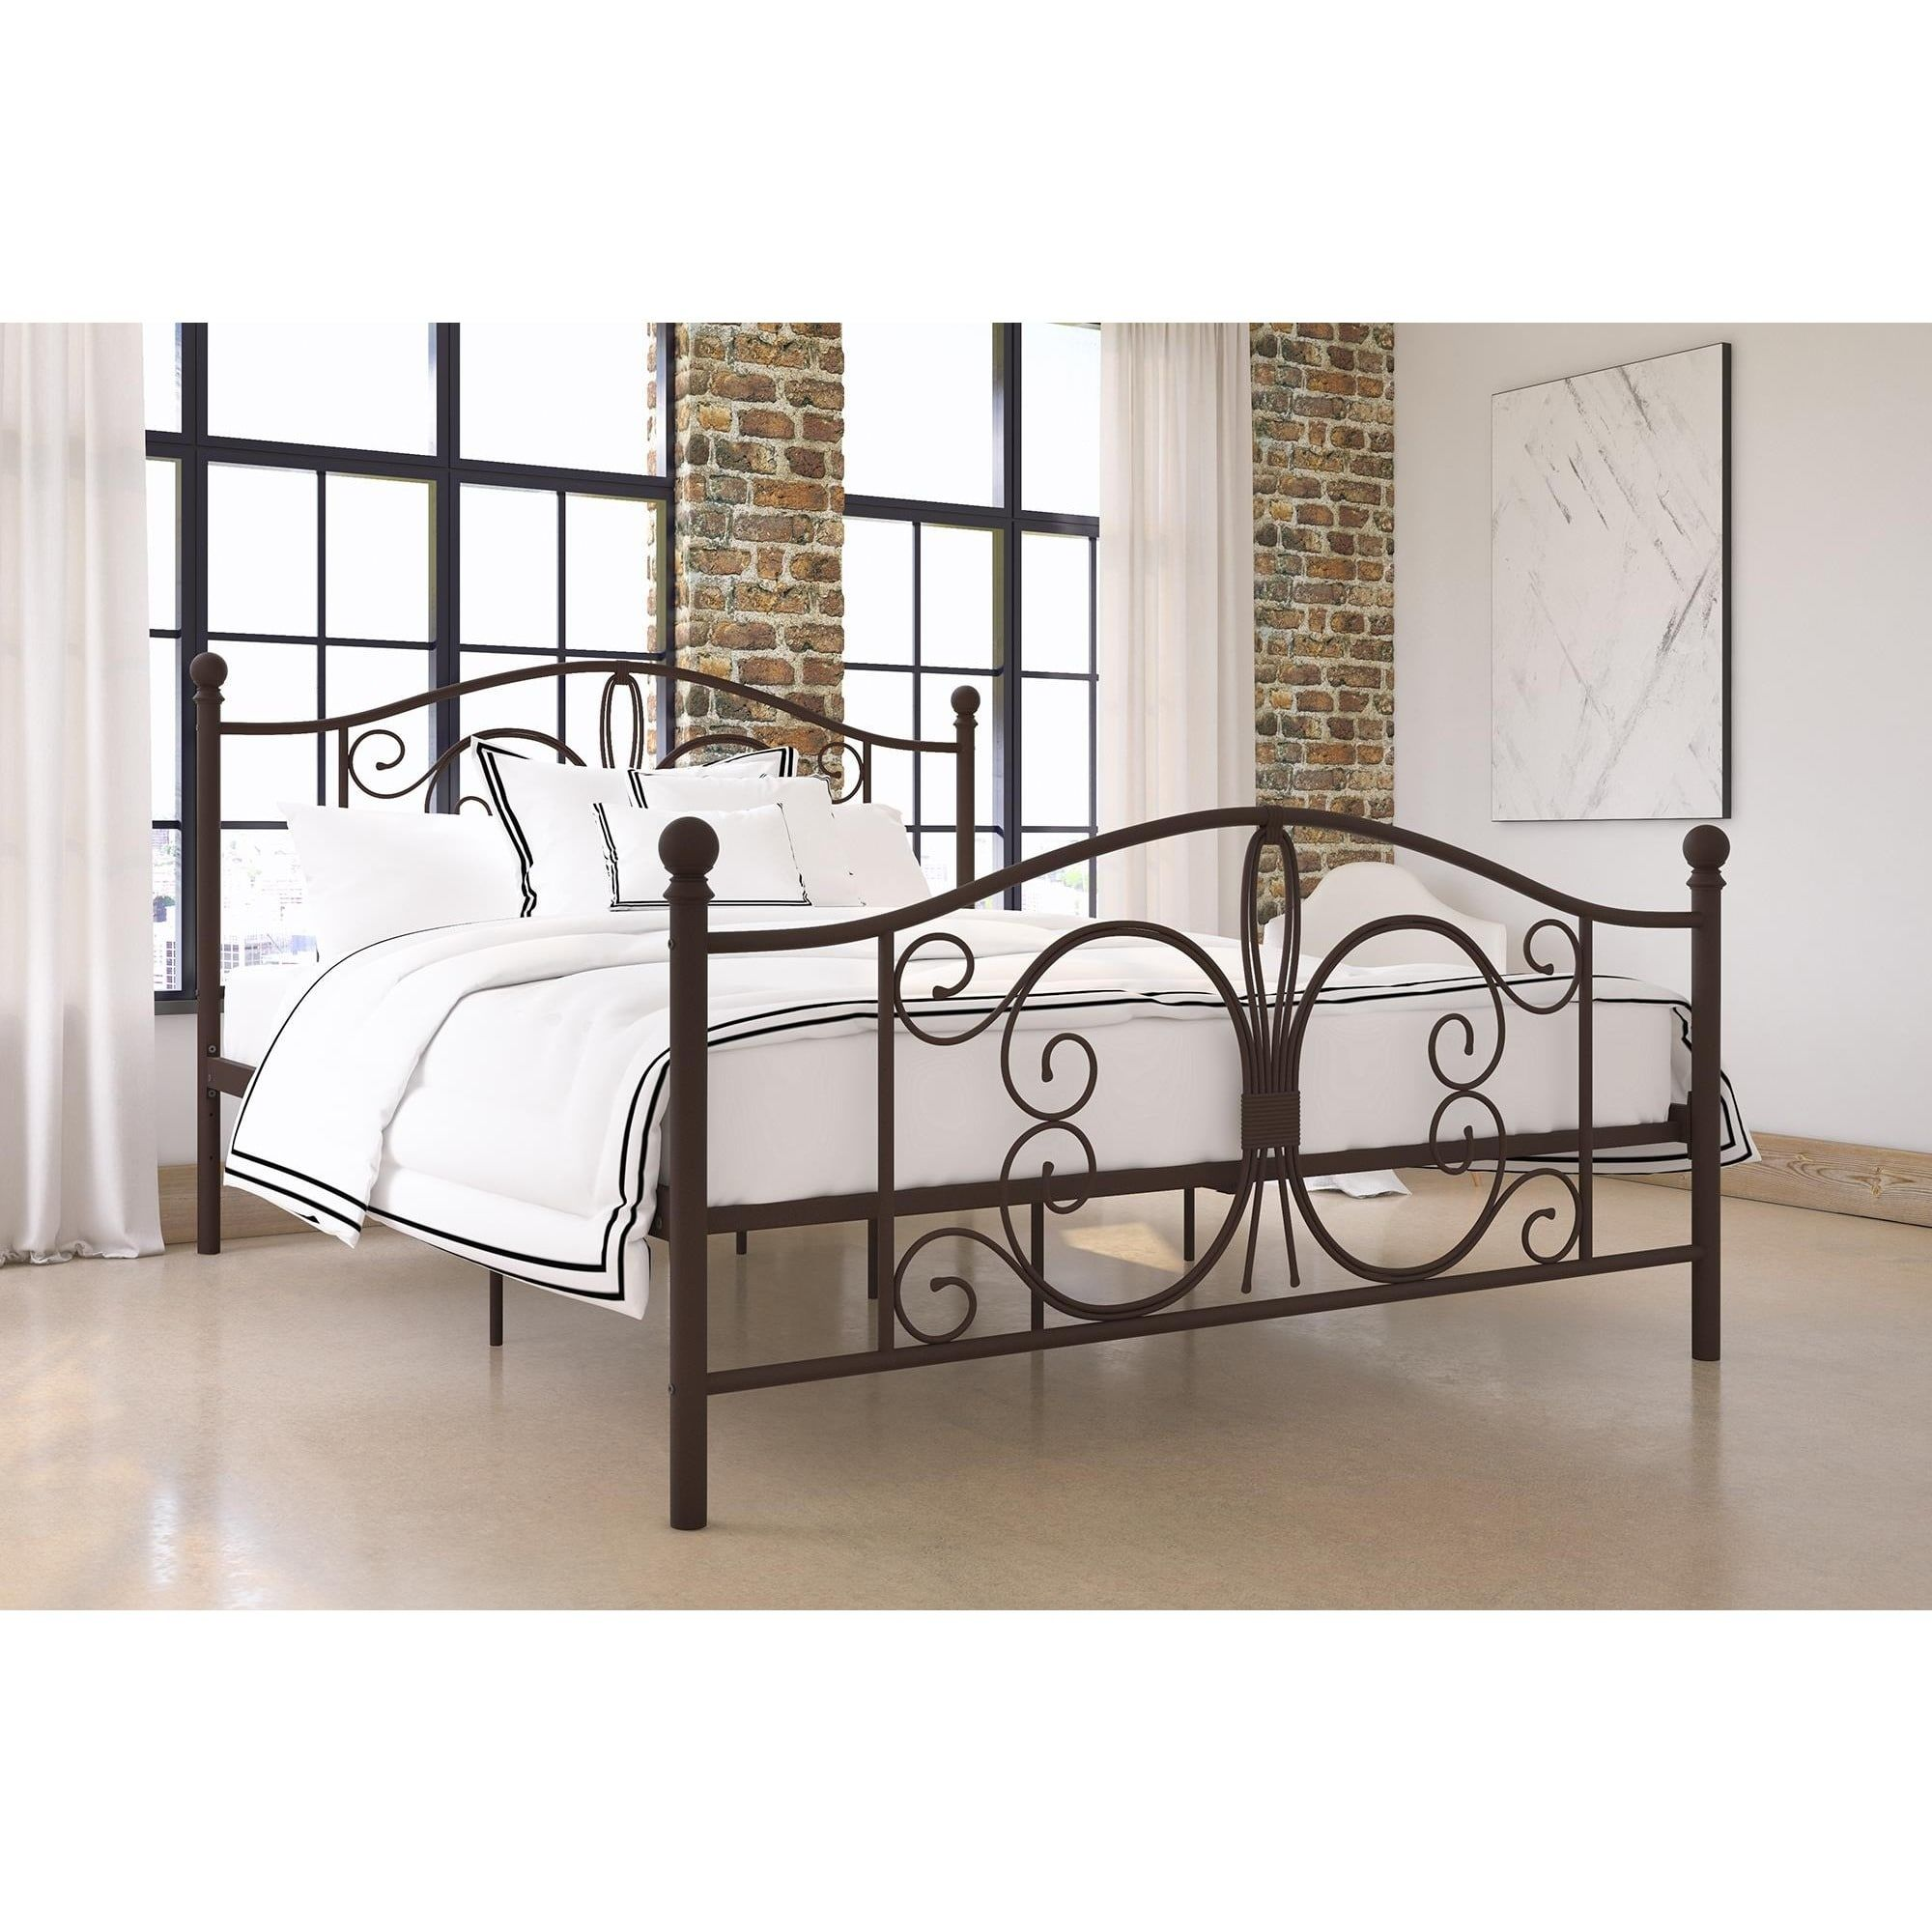 beds ideas gallery framemattress platform in king metal picture inspirations brown rite images bed abigail rest also of and